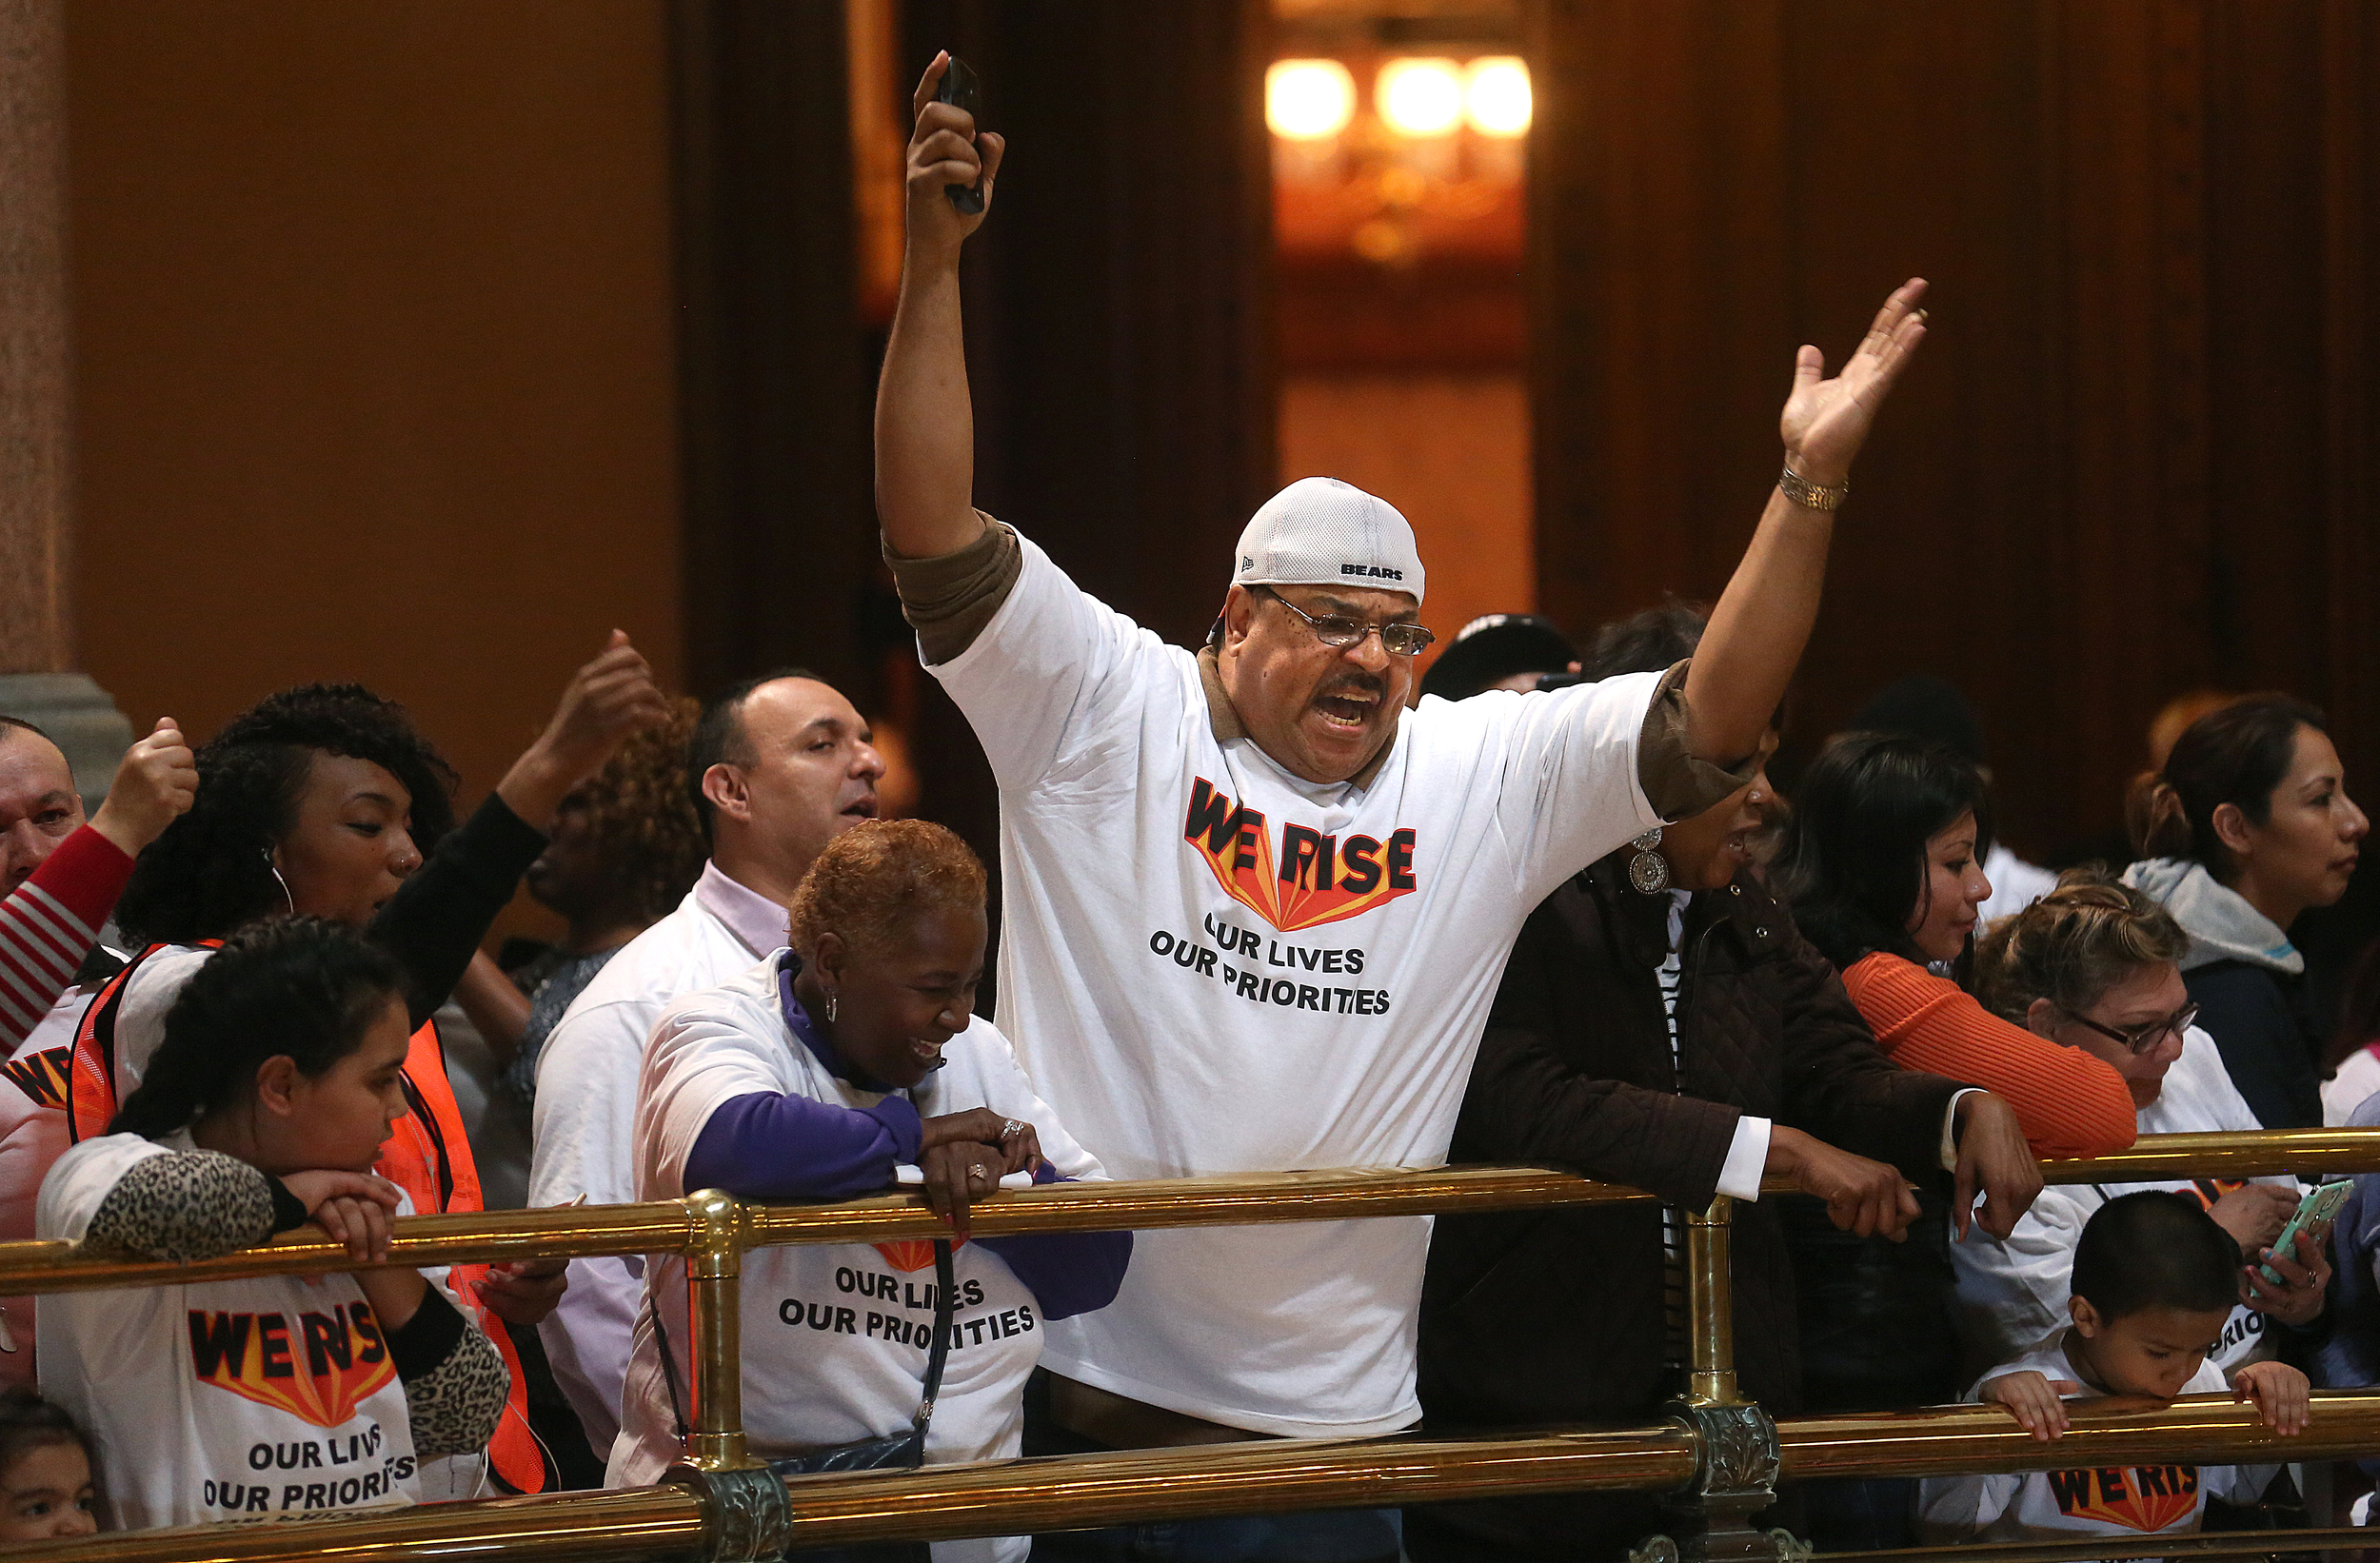 """Protestors gathered on several levels in the rotunda area of the State Capitol building during the rally on Wed. March 11, 2015. As part of """"We Rise"""", a national day of action targeting state budget cuts, several thousand people from faith, community and labor organizations including adults, children and clergy affected by Gov. Bruce Rauner's proposed cuts gathered in Springfield to protest. The event began with a rally inside the Capitol building followed by a march to the governor's mansion where a mock """"funeral"""" for the """"99%"""" took place. David Spencer/The State Journal-Register"""